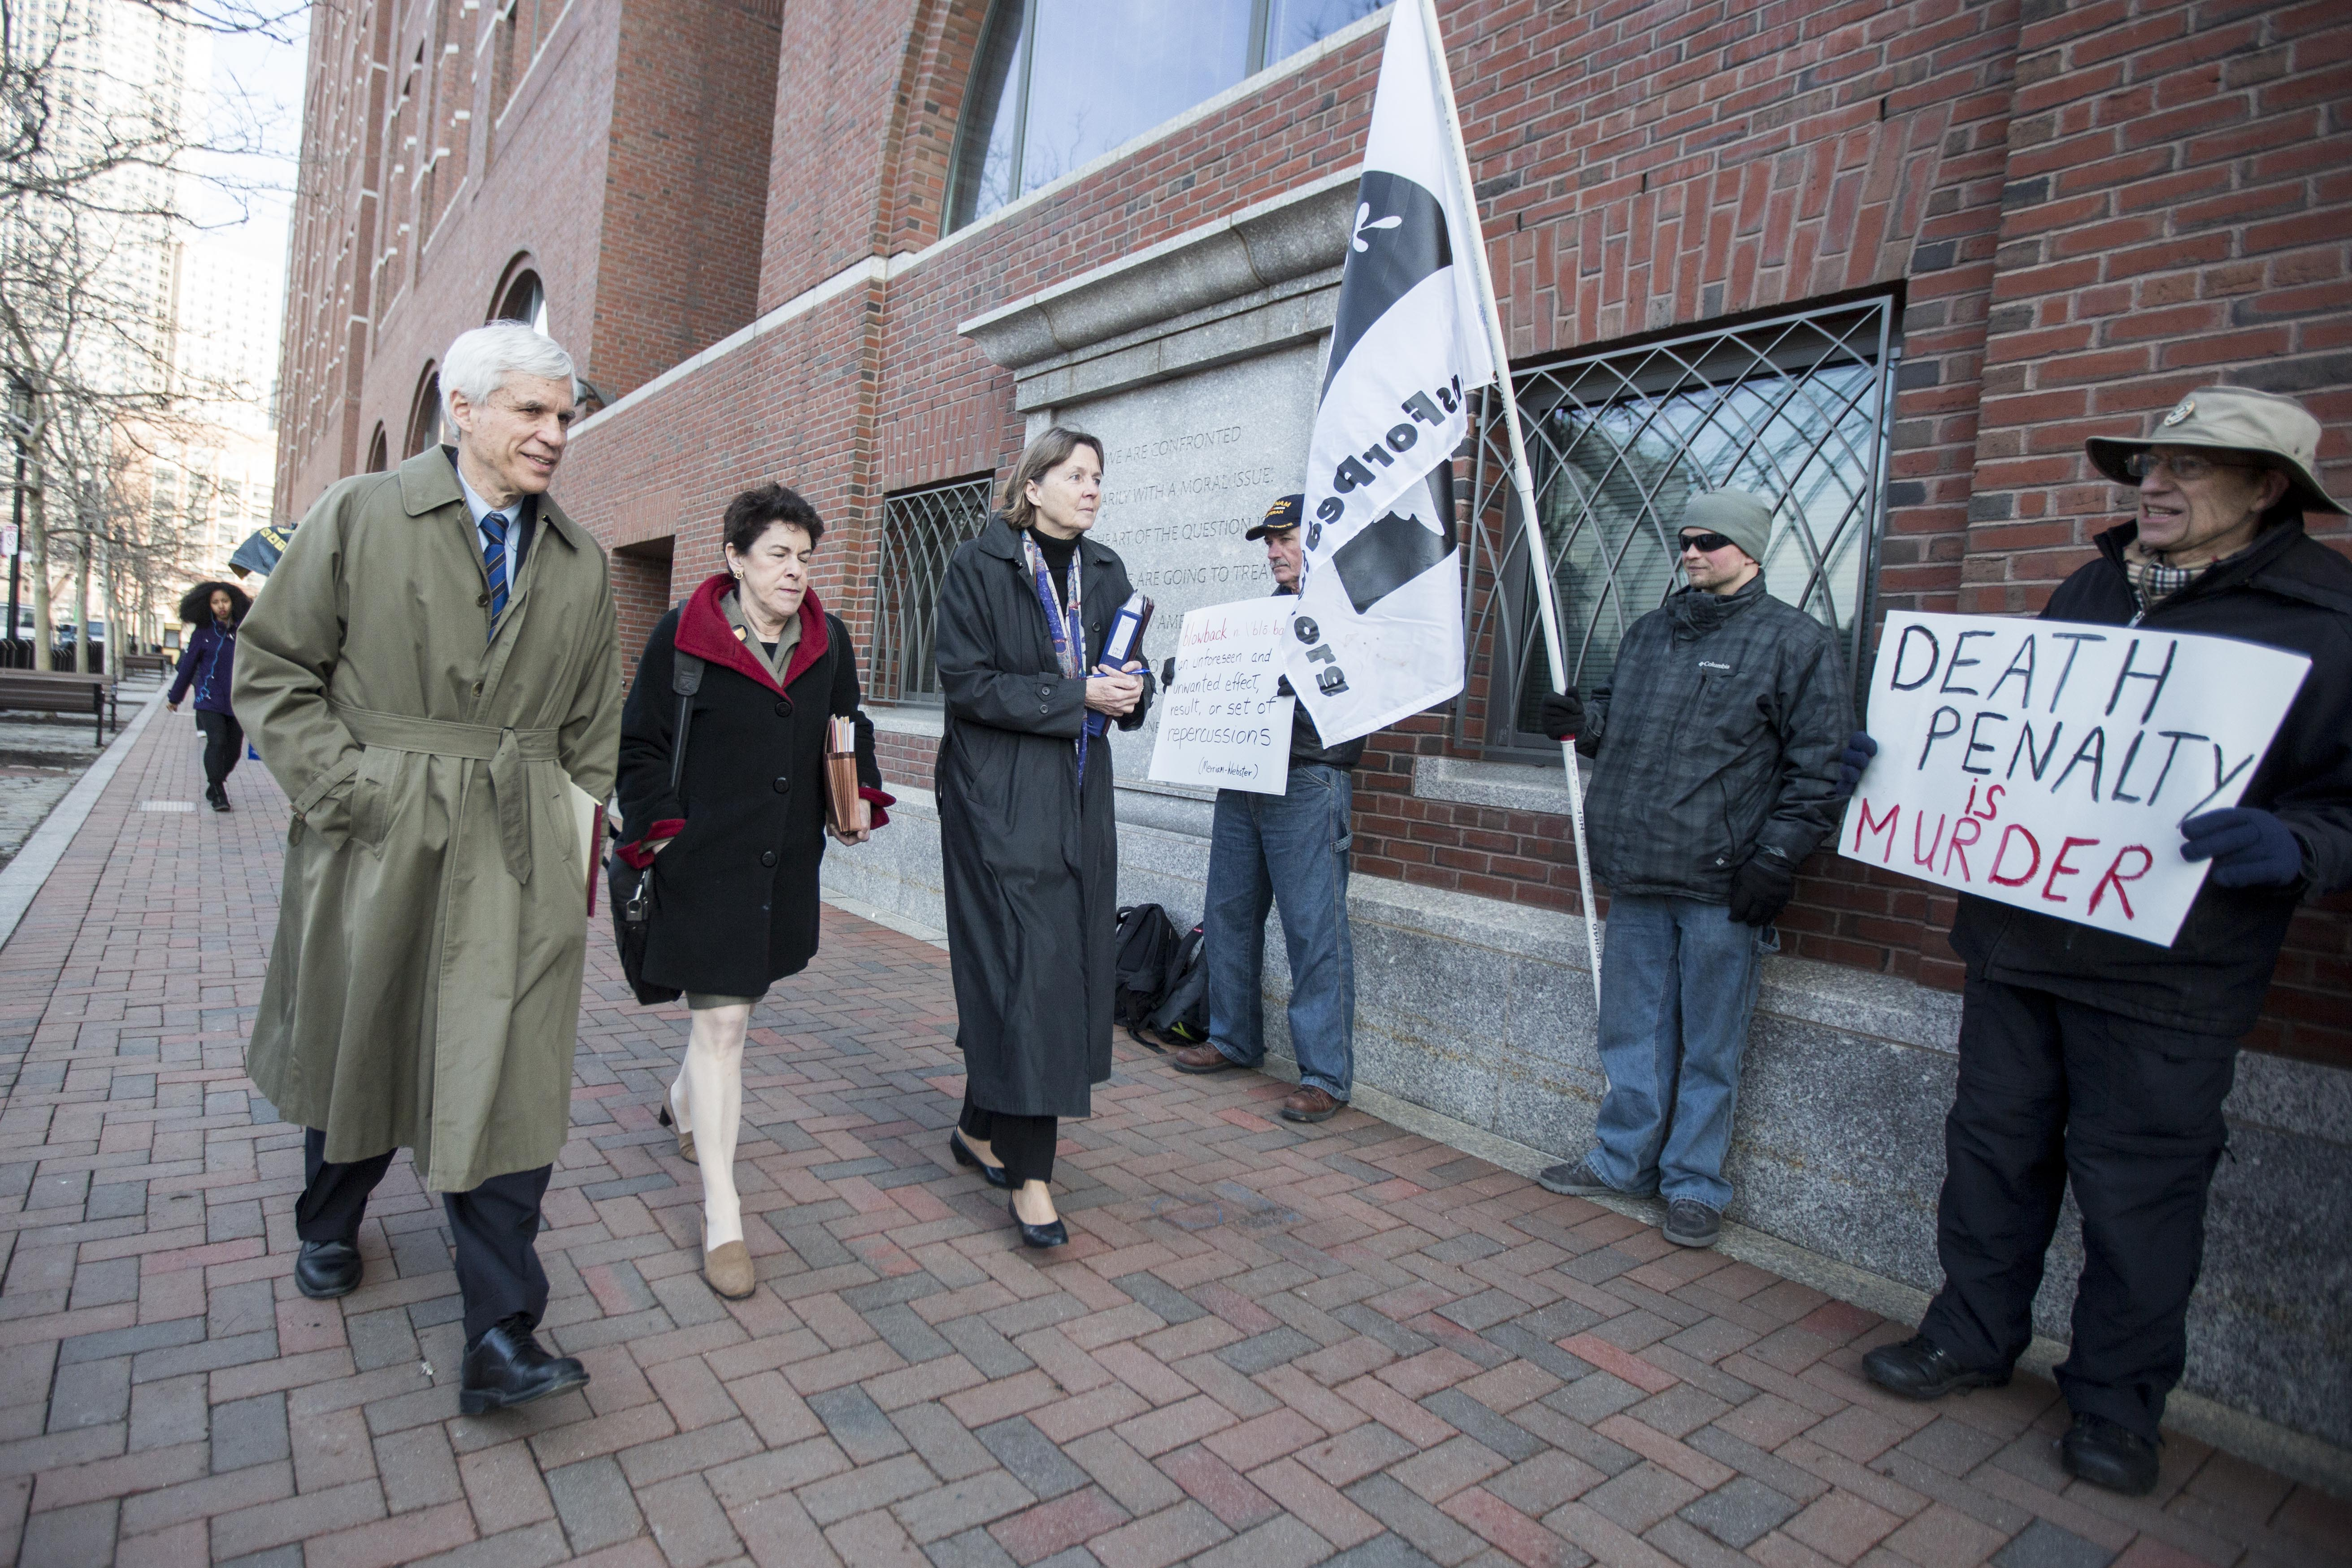 Members of the legal defense team for Boston Marathon bombing suspect Dzhokhar Tsarnaev, including David Bruck, (from left), Miriam Conrad, and Judy Clarke walk past death-penalty protesters at John Joseph Moakley United States Courthouse. (Getty)